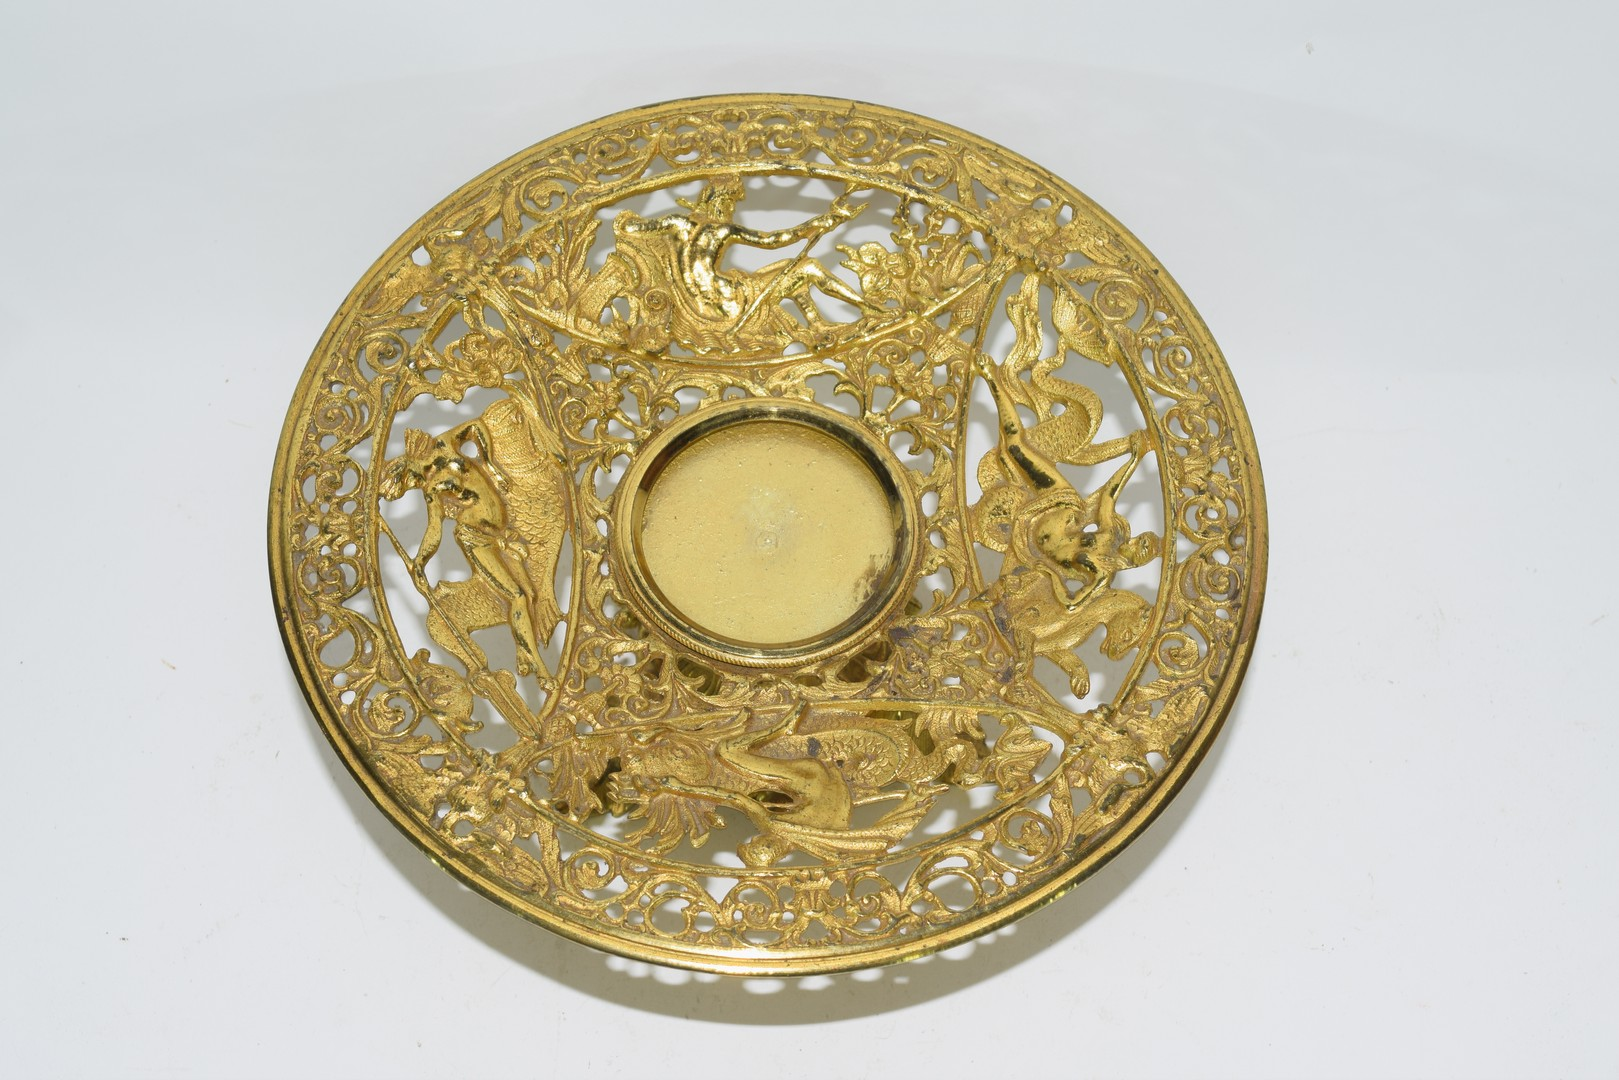 Gilt metal tazza with reticulated decoration of classical figures - Image 2 of 3